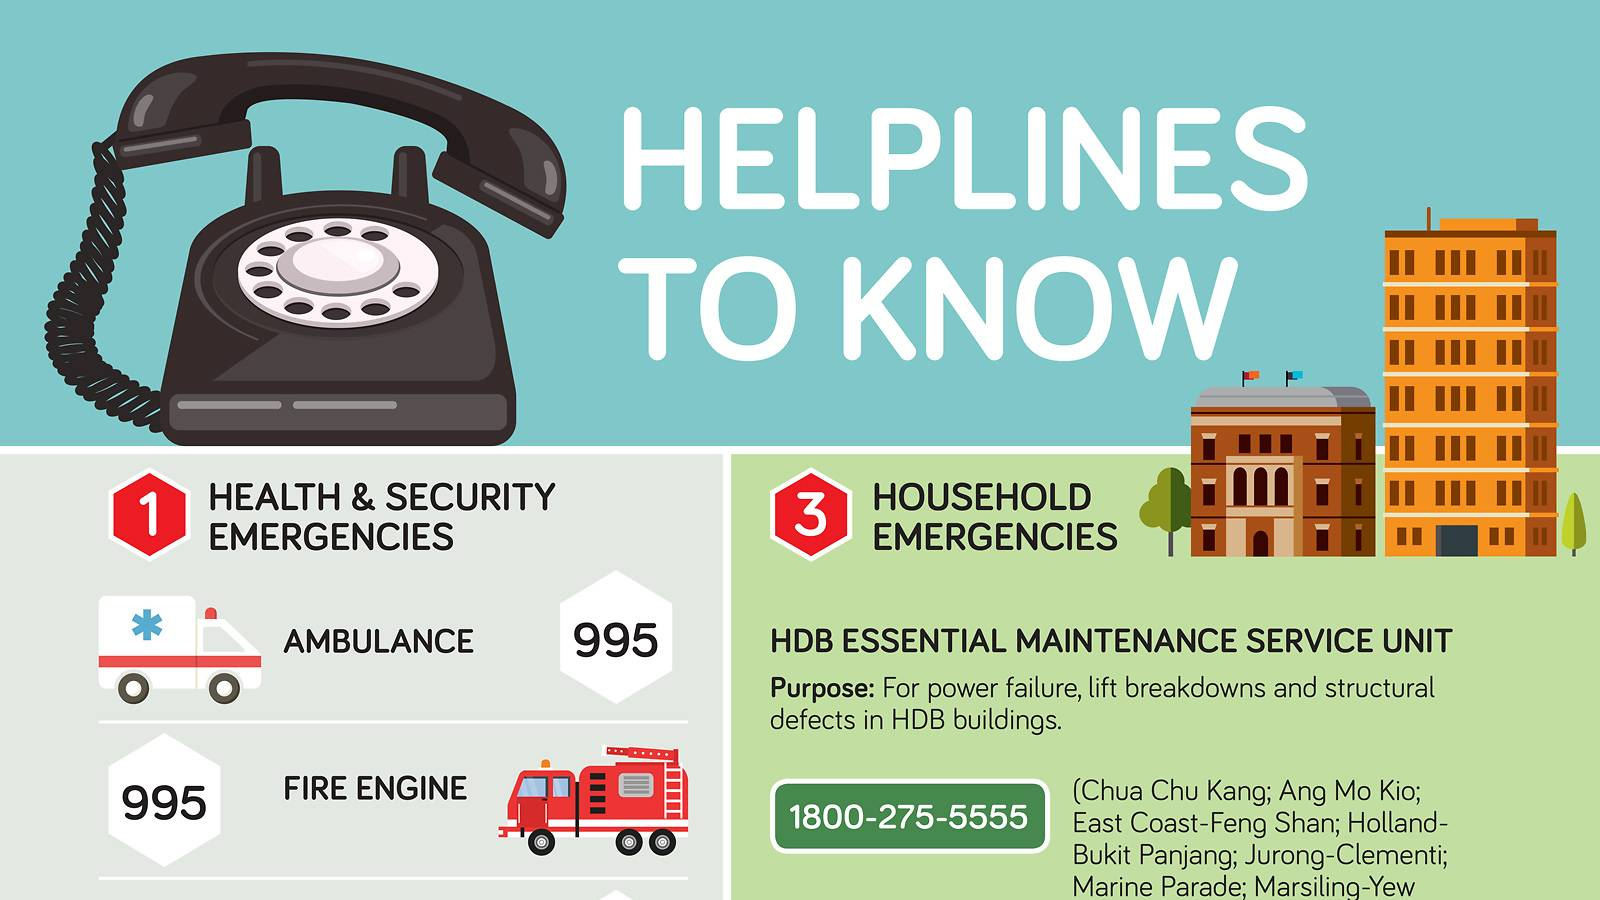 Parents-sos-who-do-you-call-when-in-emergency-1